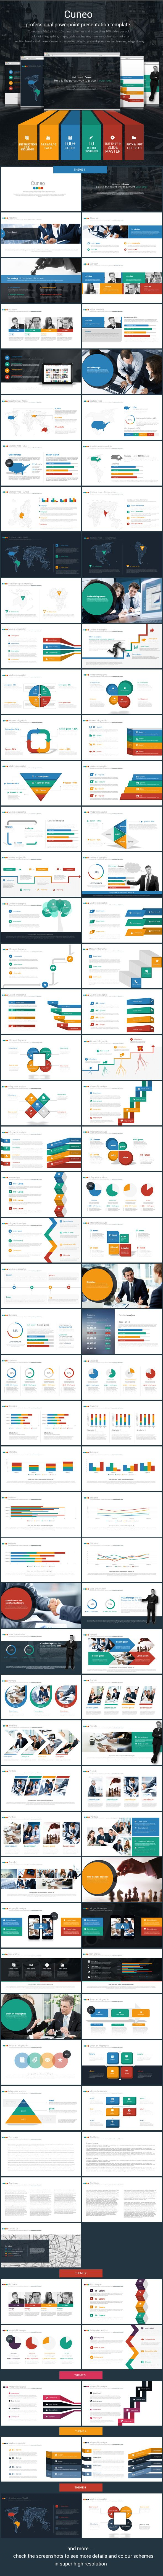 Cuneo Powerpoint Presentation Template (PowerPoint Templates) cprev